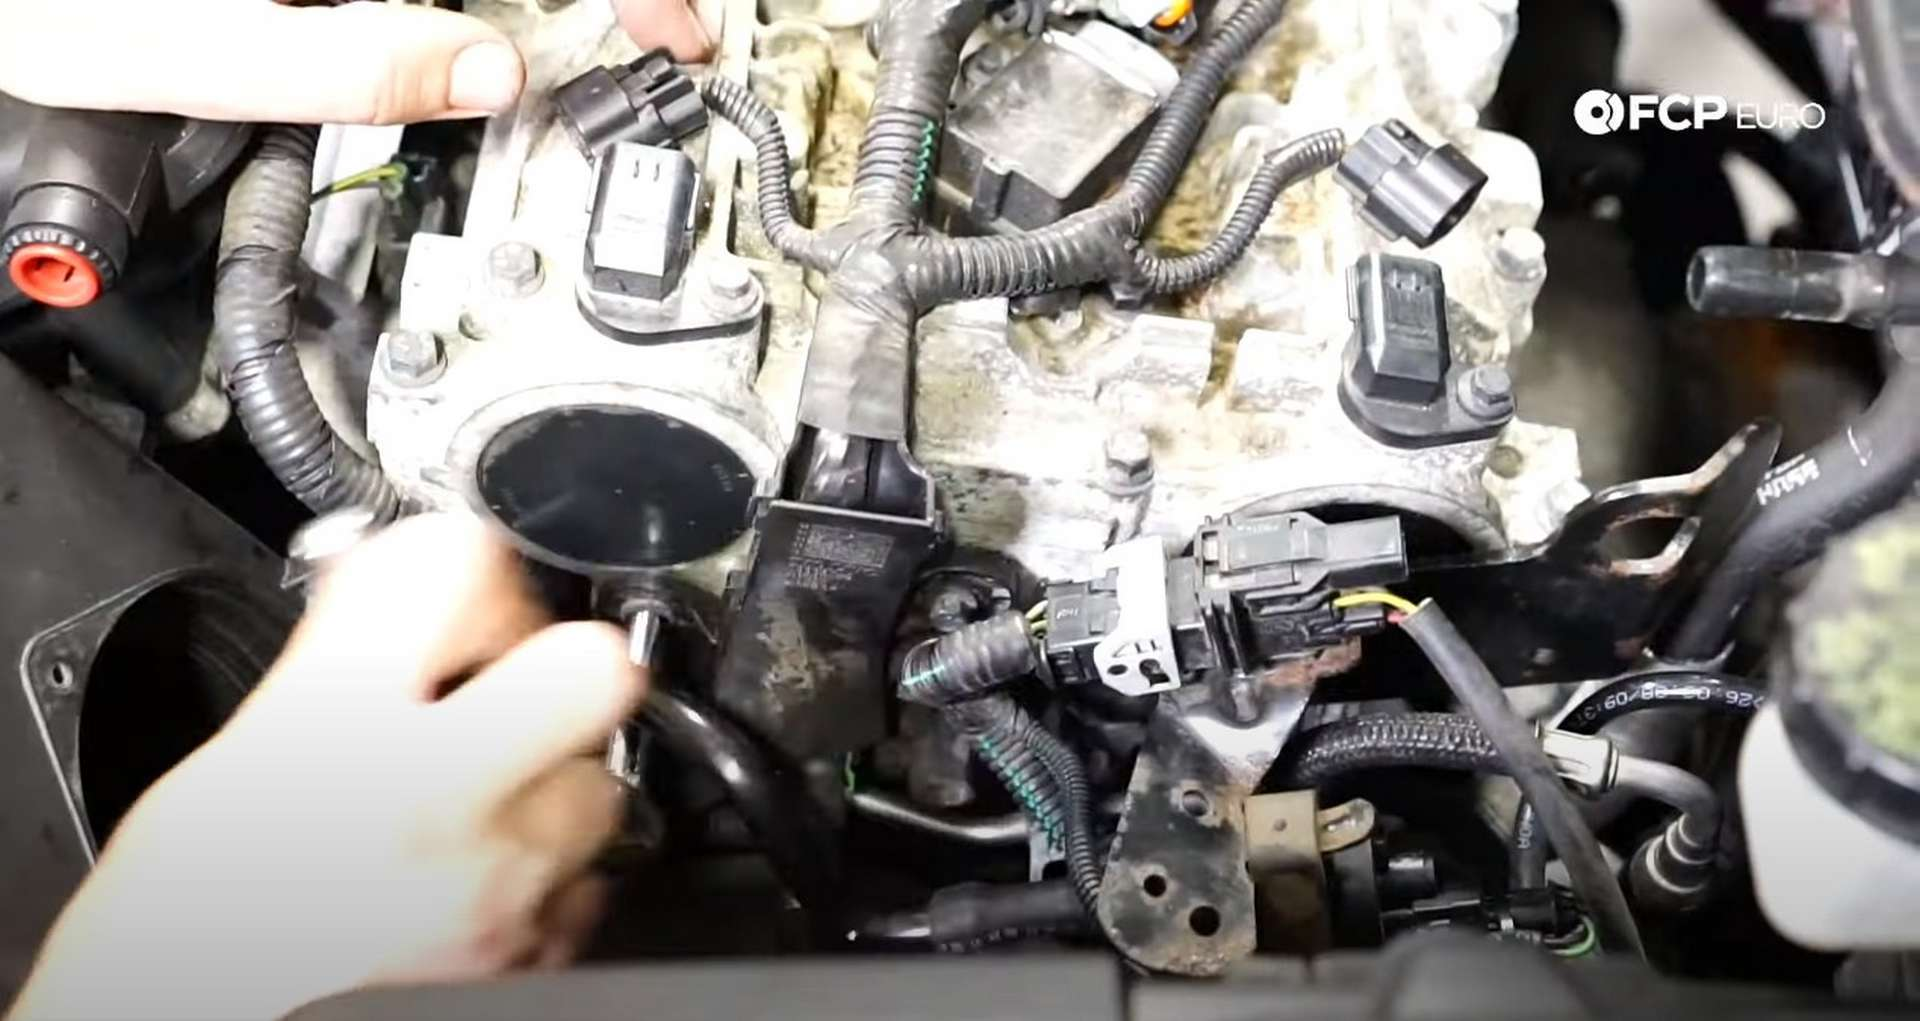 DIY Volvo P1 Water Pump Replacement reattaching the ignition coil harness to the cylinder head